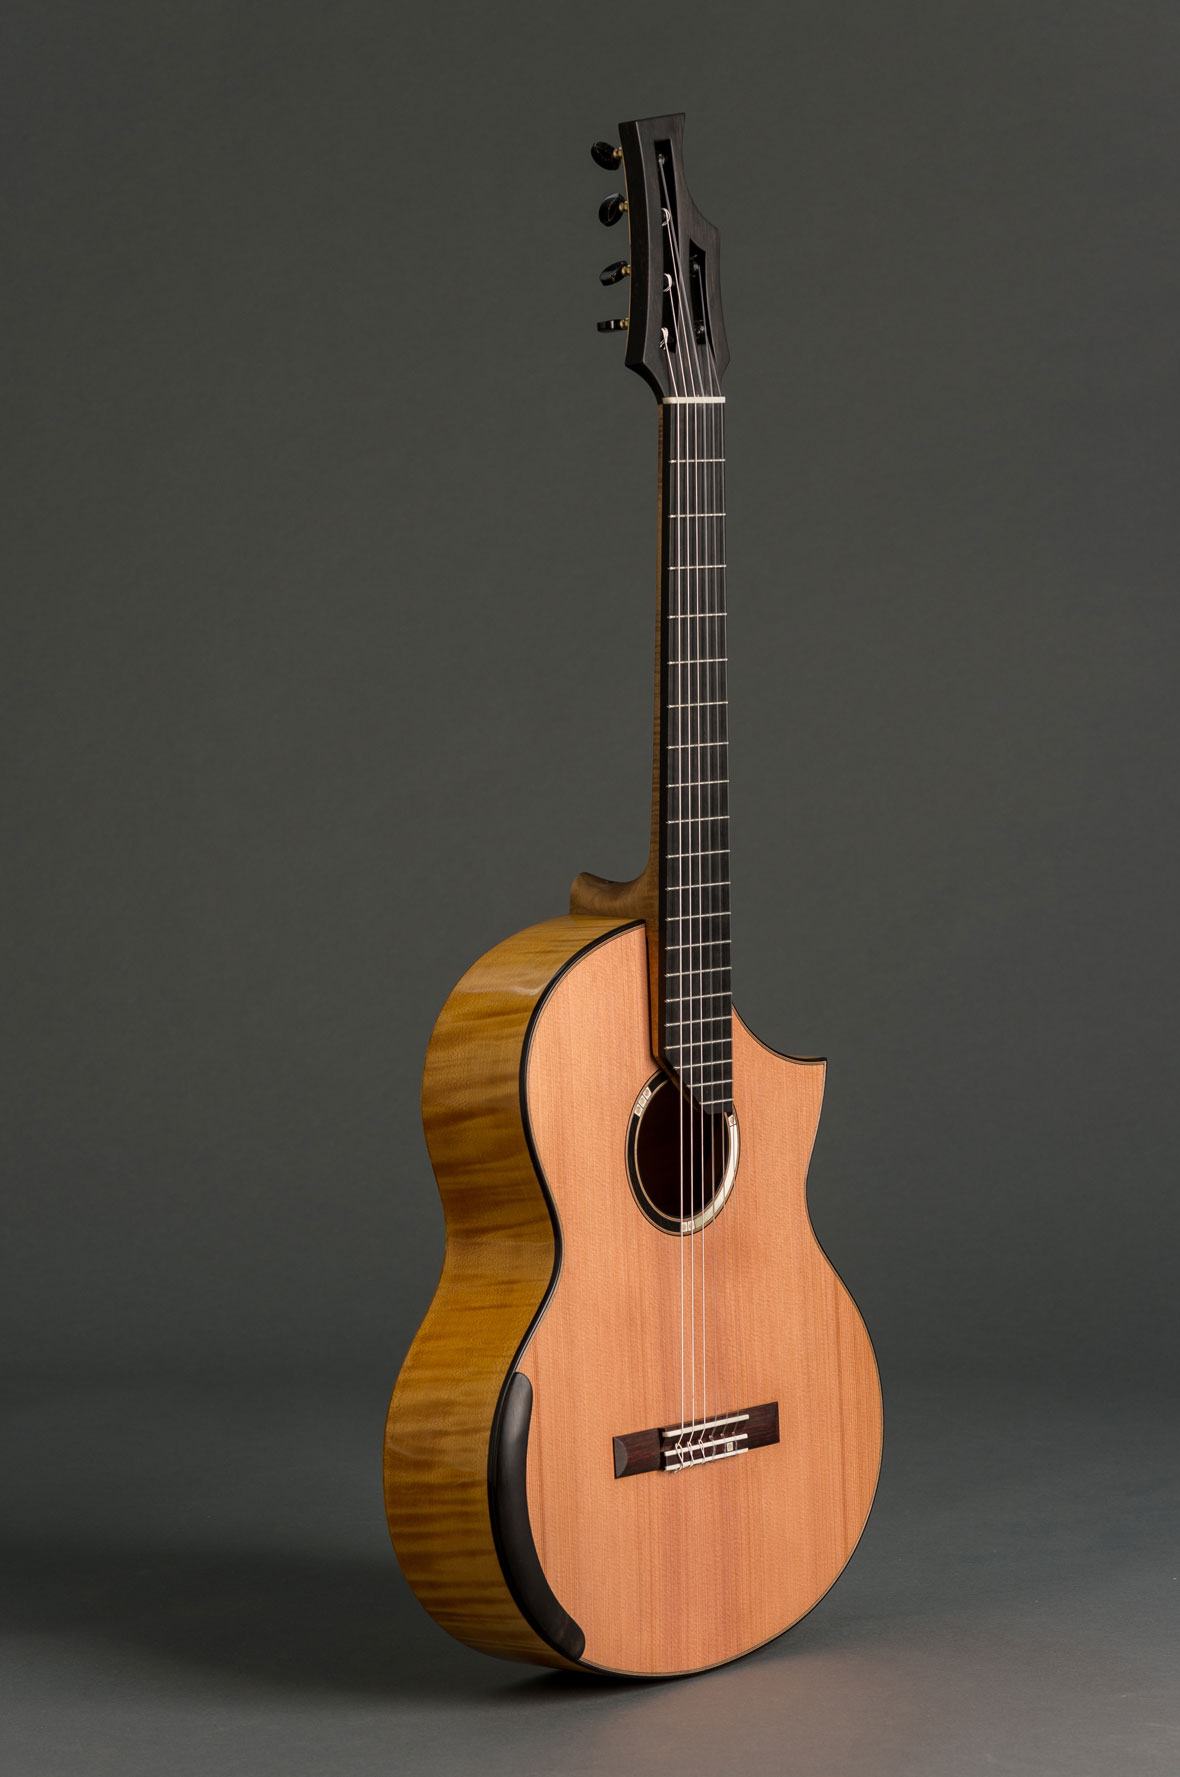 A Series guitar with cedar soundboard and maple back and sides